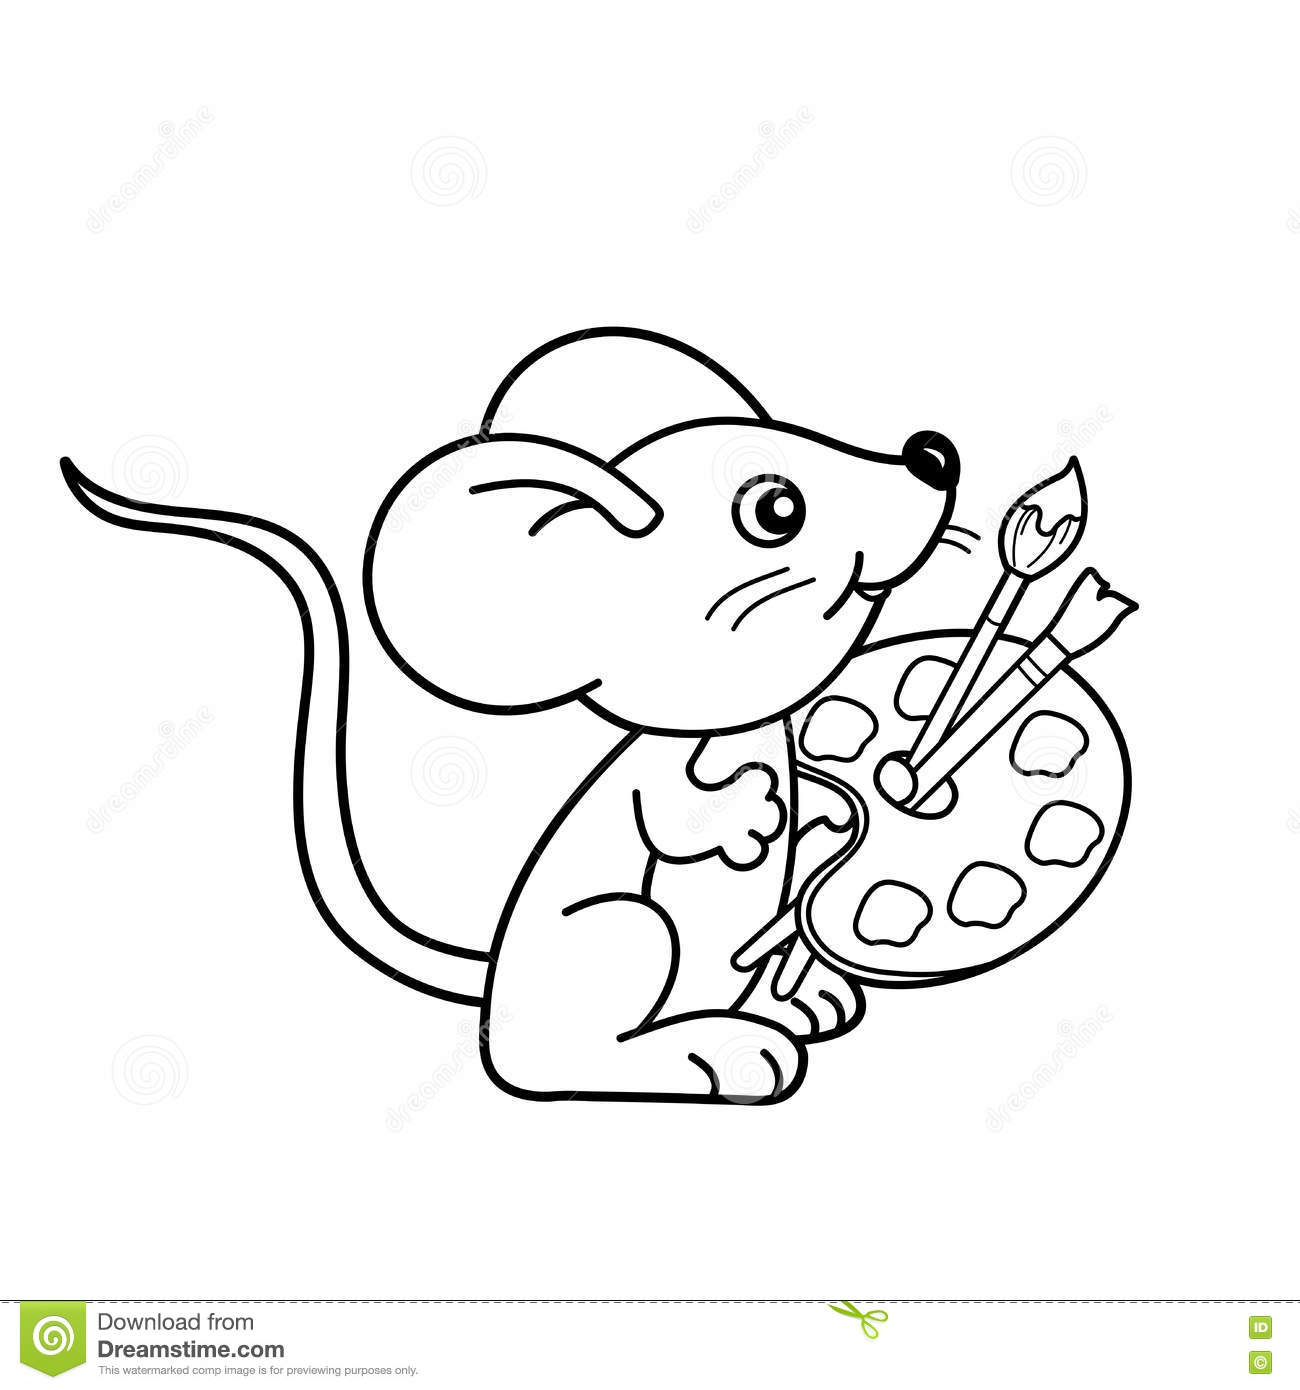 coloring page outline of cartoon little mouse with brushes and paints coloring book for kids